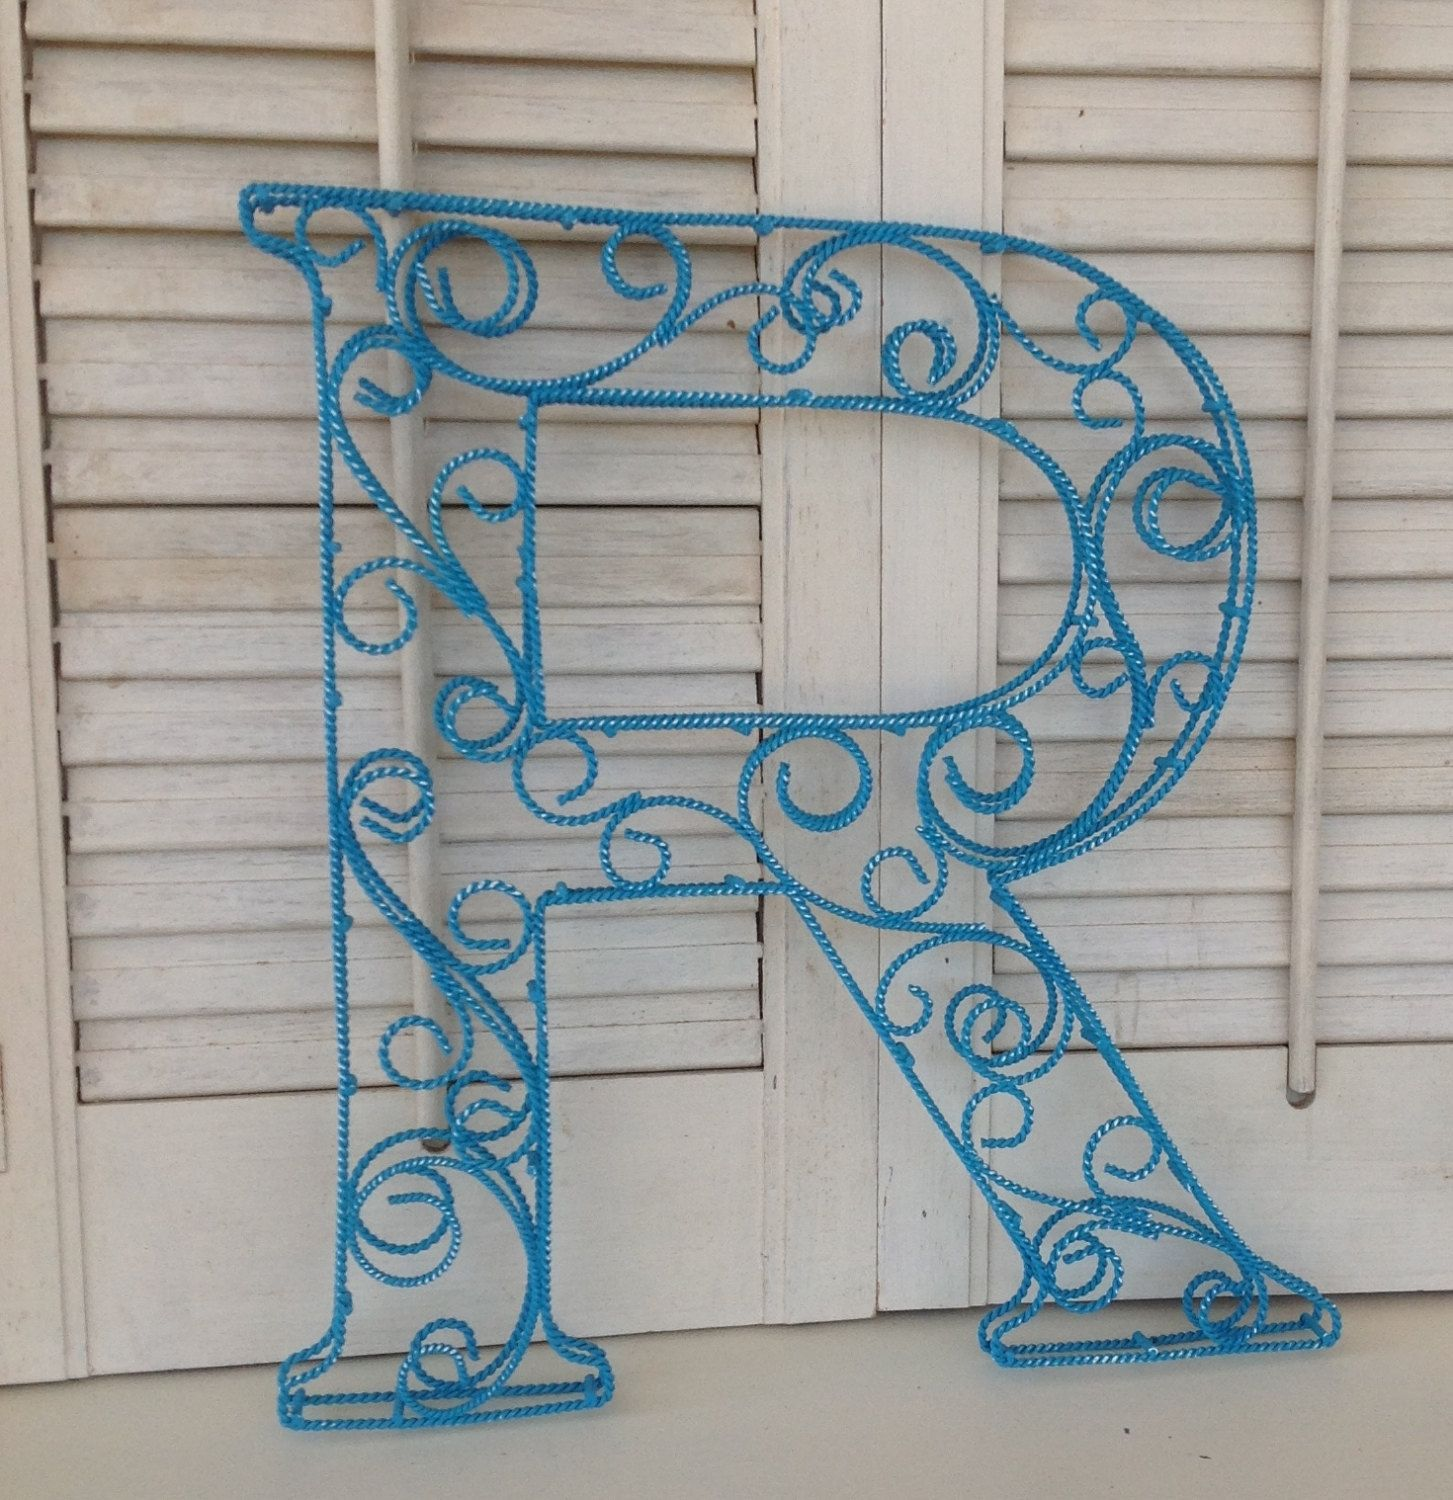 Scrolled Wire Letter R - Metal Wall or Shelf Decor | Gimme an "|1453|1500|?|en|2|0b367f492f96a6fcf9c2e1dc5b16fa53|False|UNLIKELY|0.3476003408432007